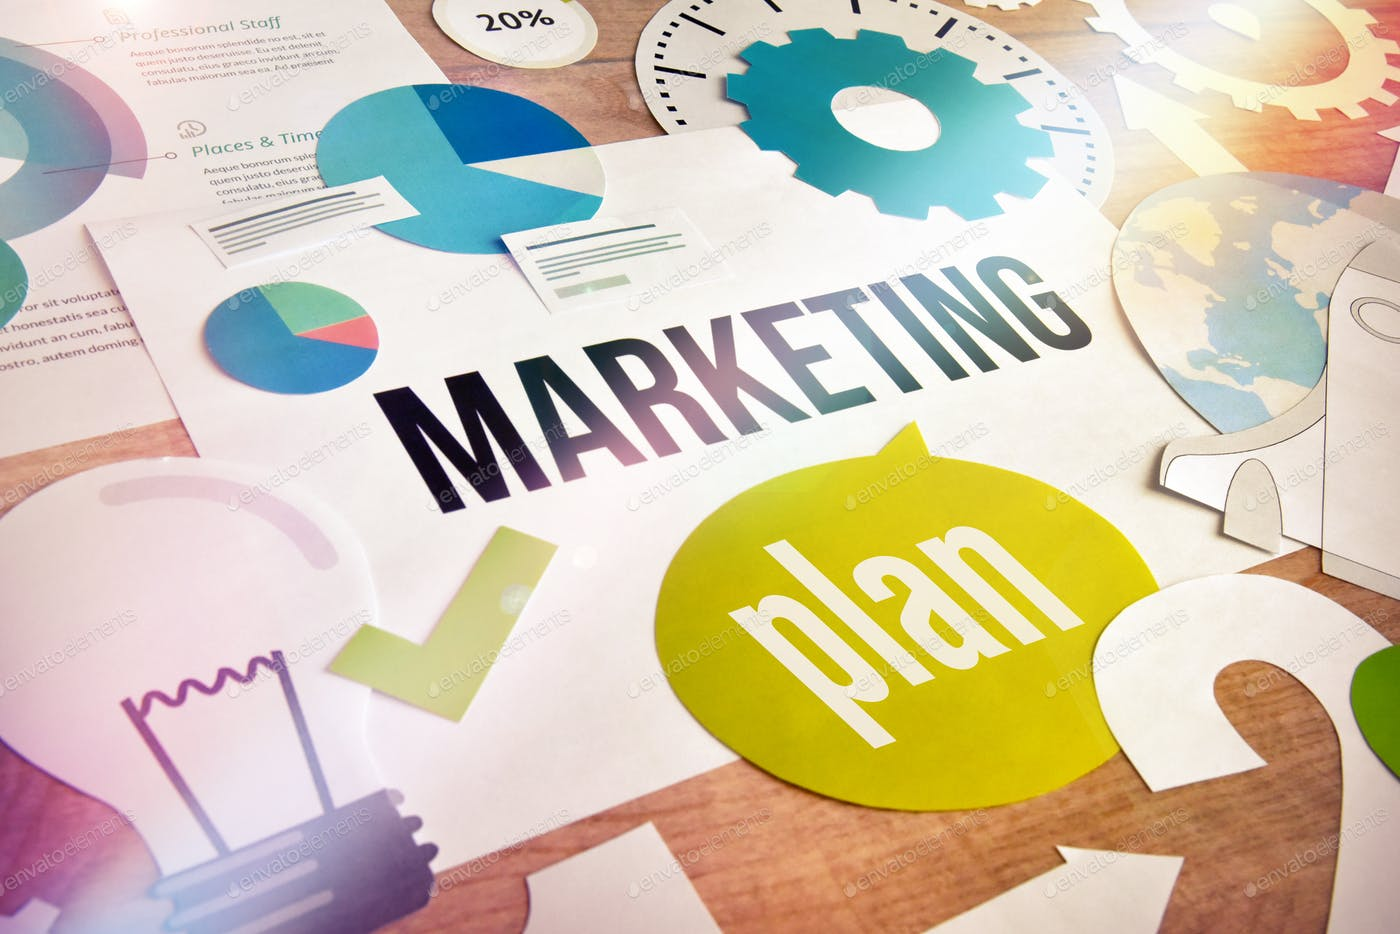 Marketing plan photo by PureSolution on Envato Elements